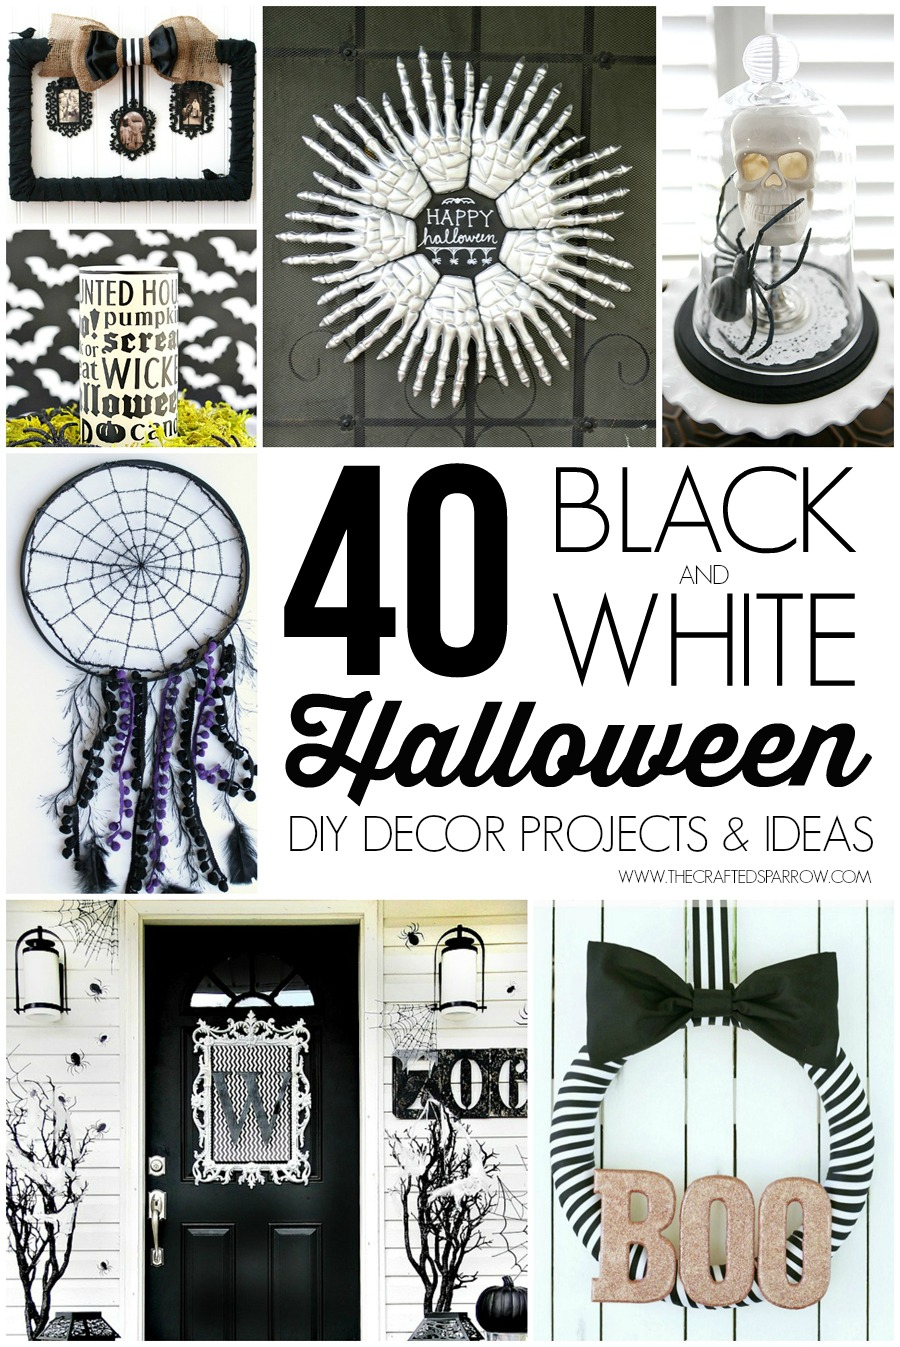 40 black & white halloween decor projects